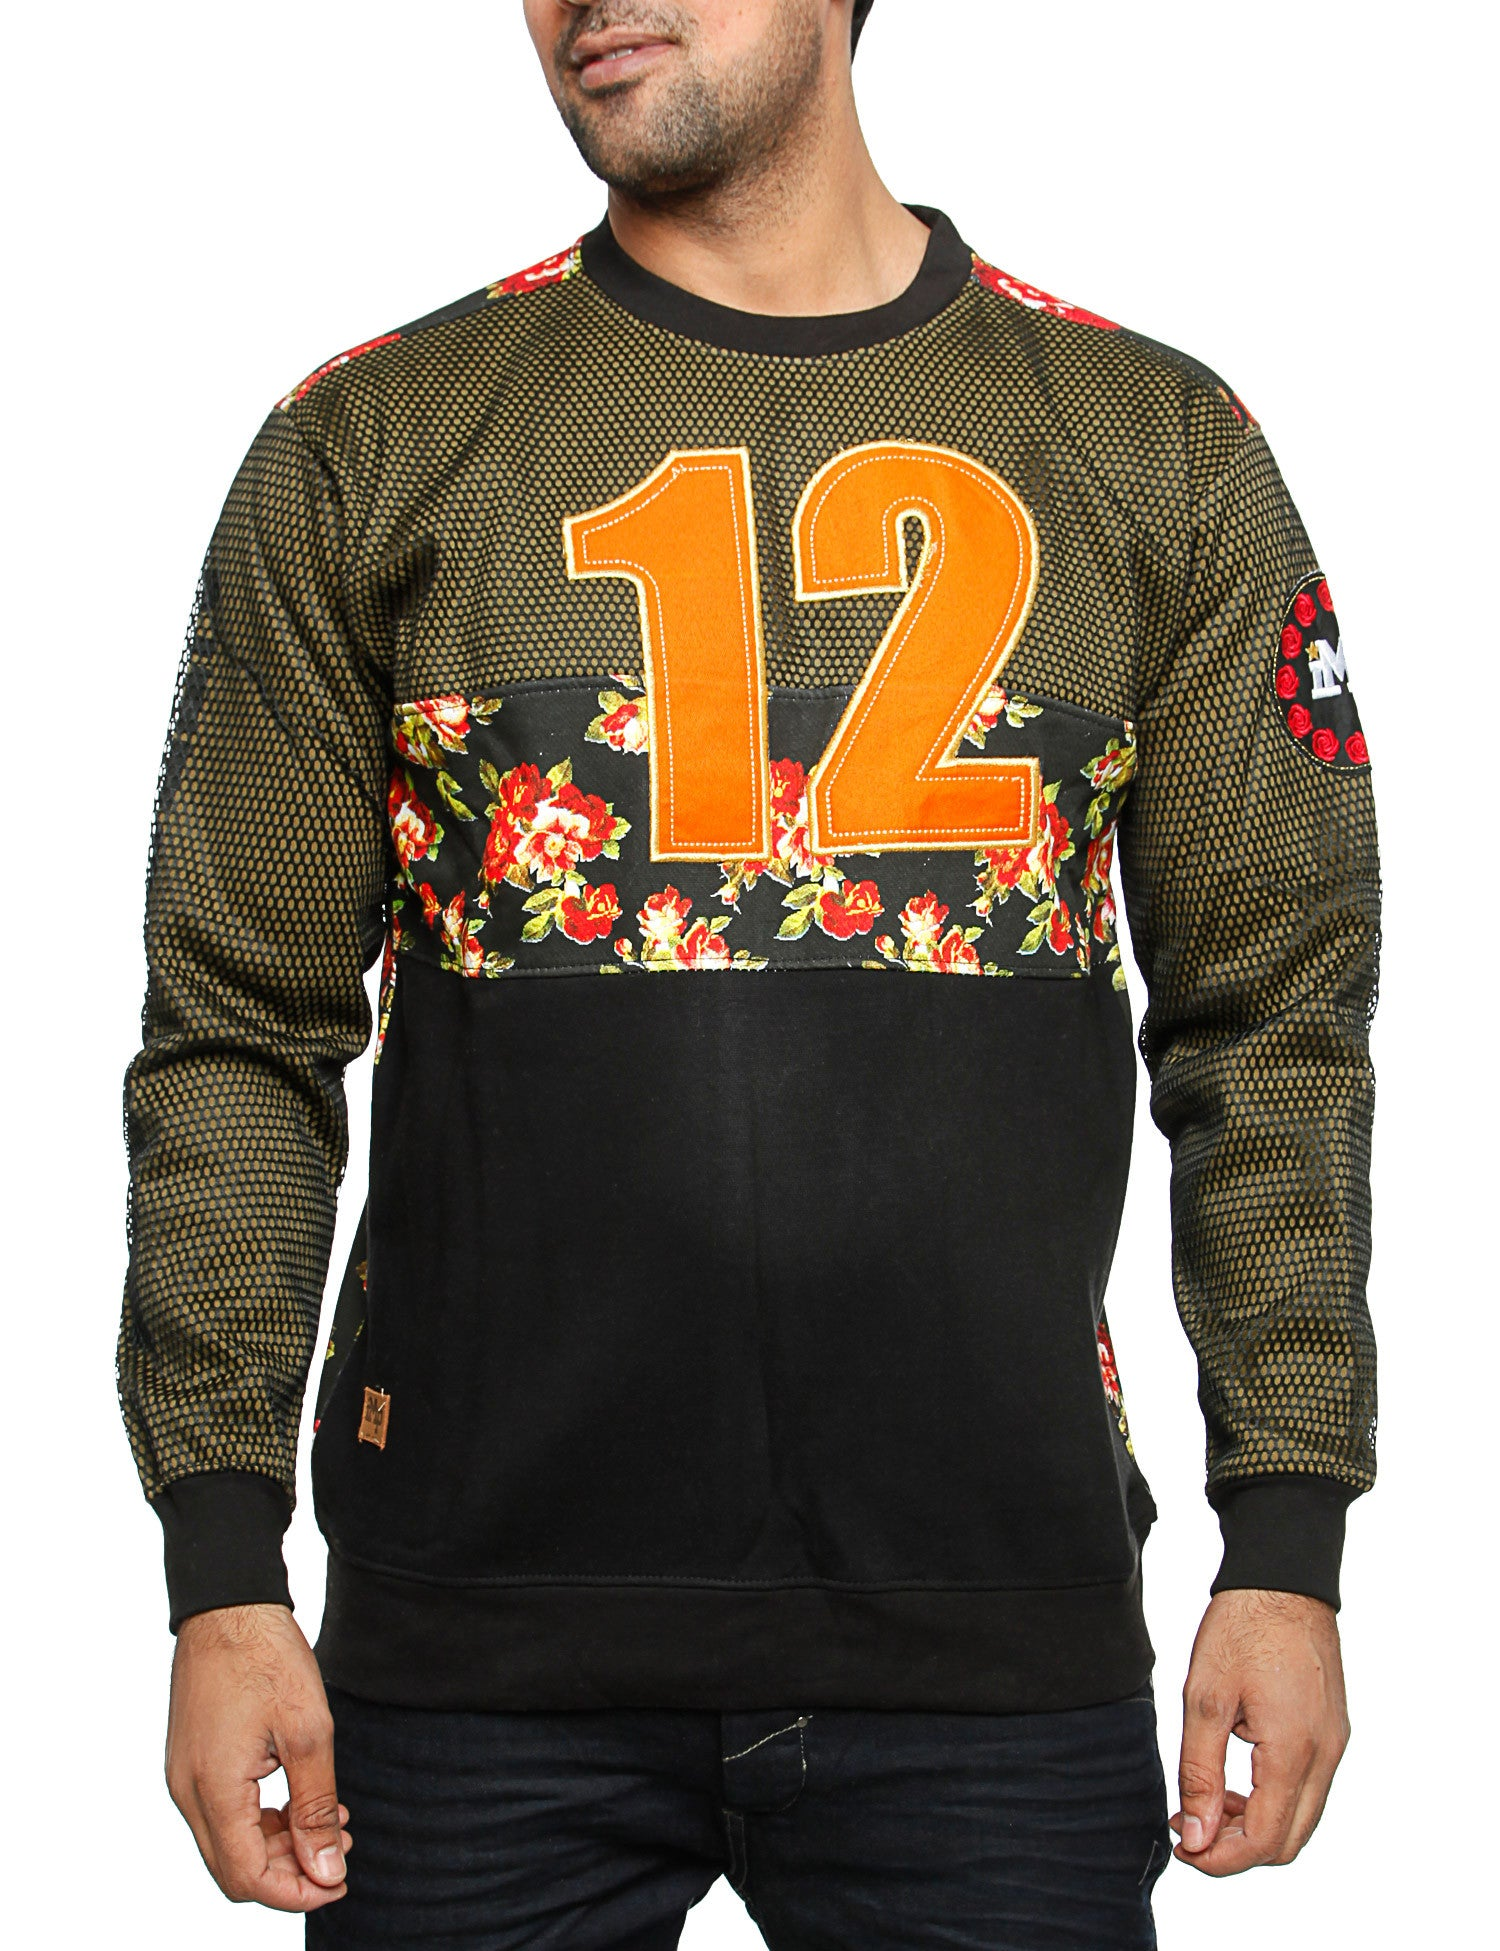 Imperious Dime a Dozen Sweatshirt CS71 Black